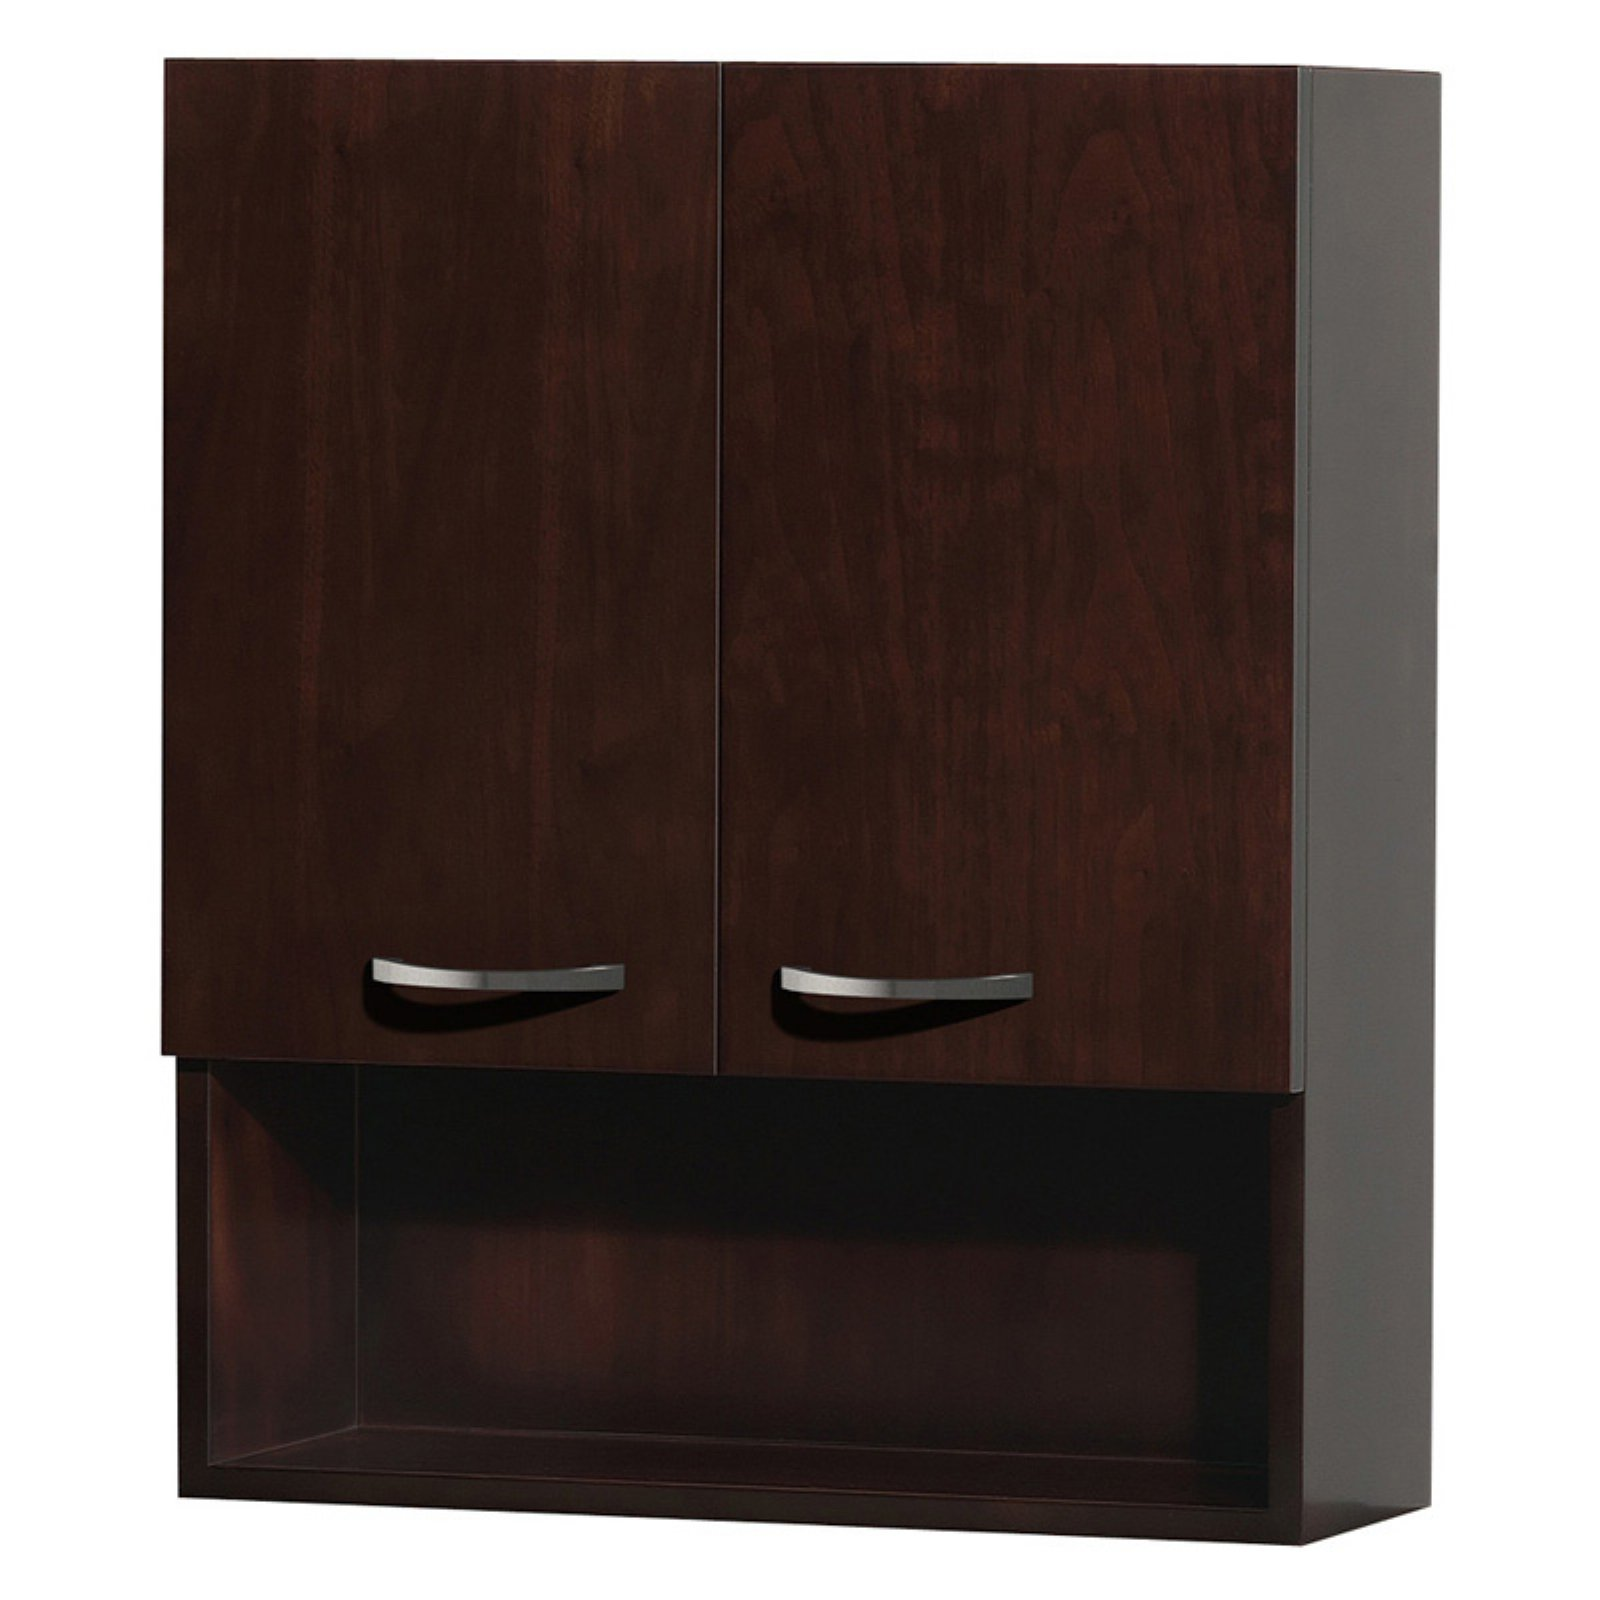 Wyndham Collection Maria Wall-Mounted Bathroom Storage Cabinet in Espresso with 3 Shelves